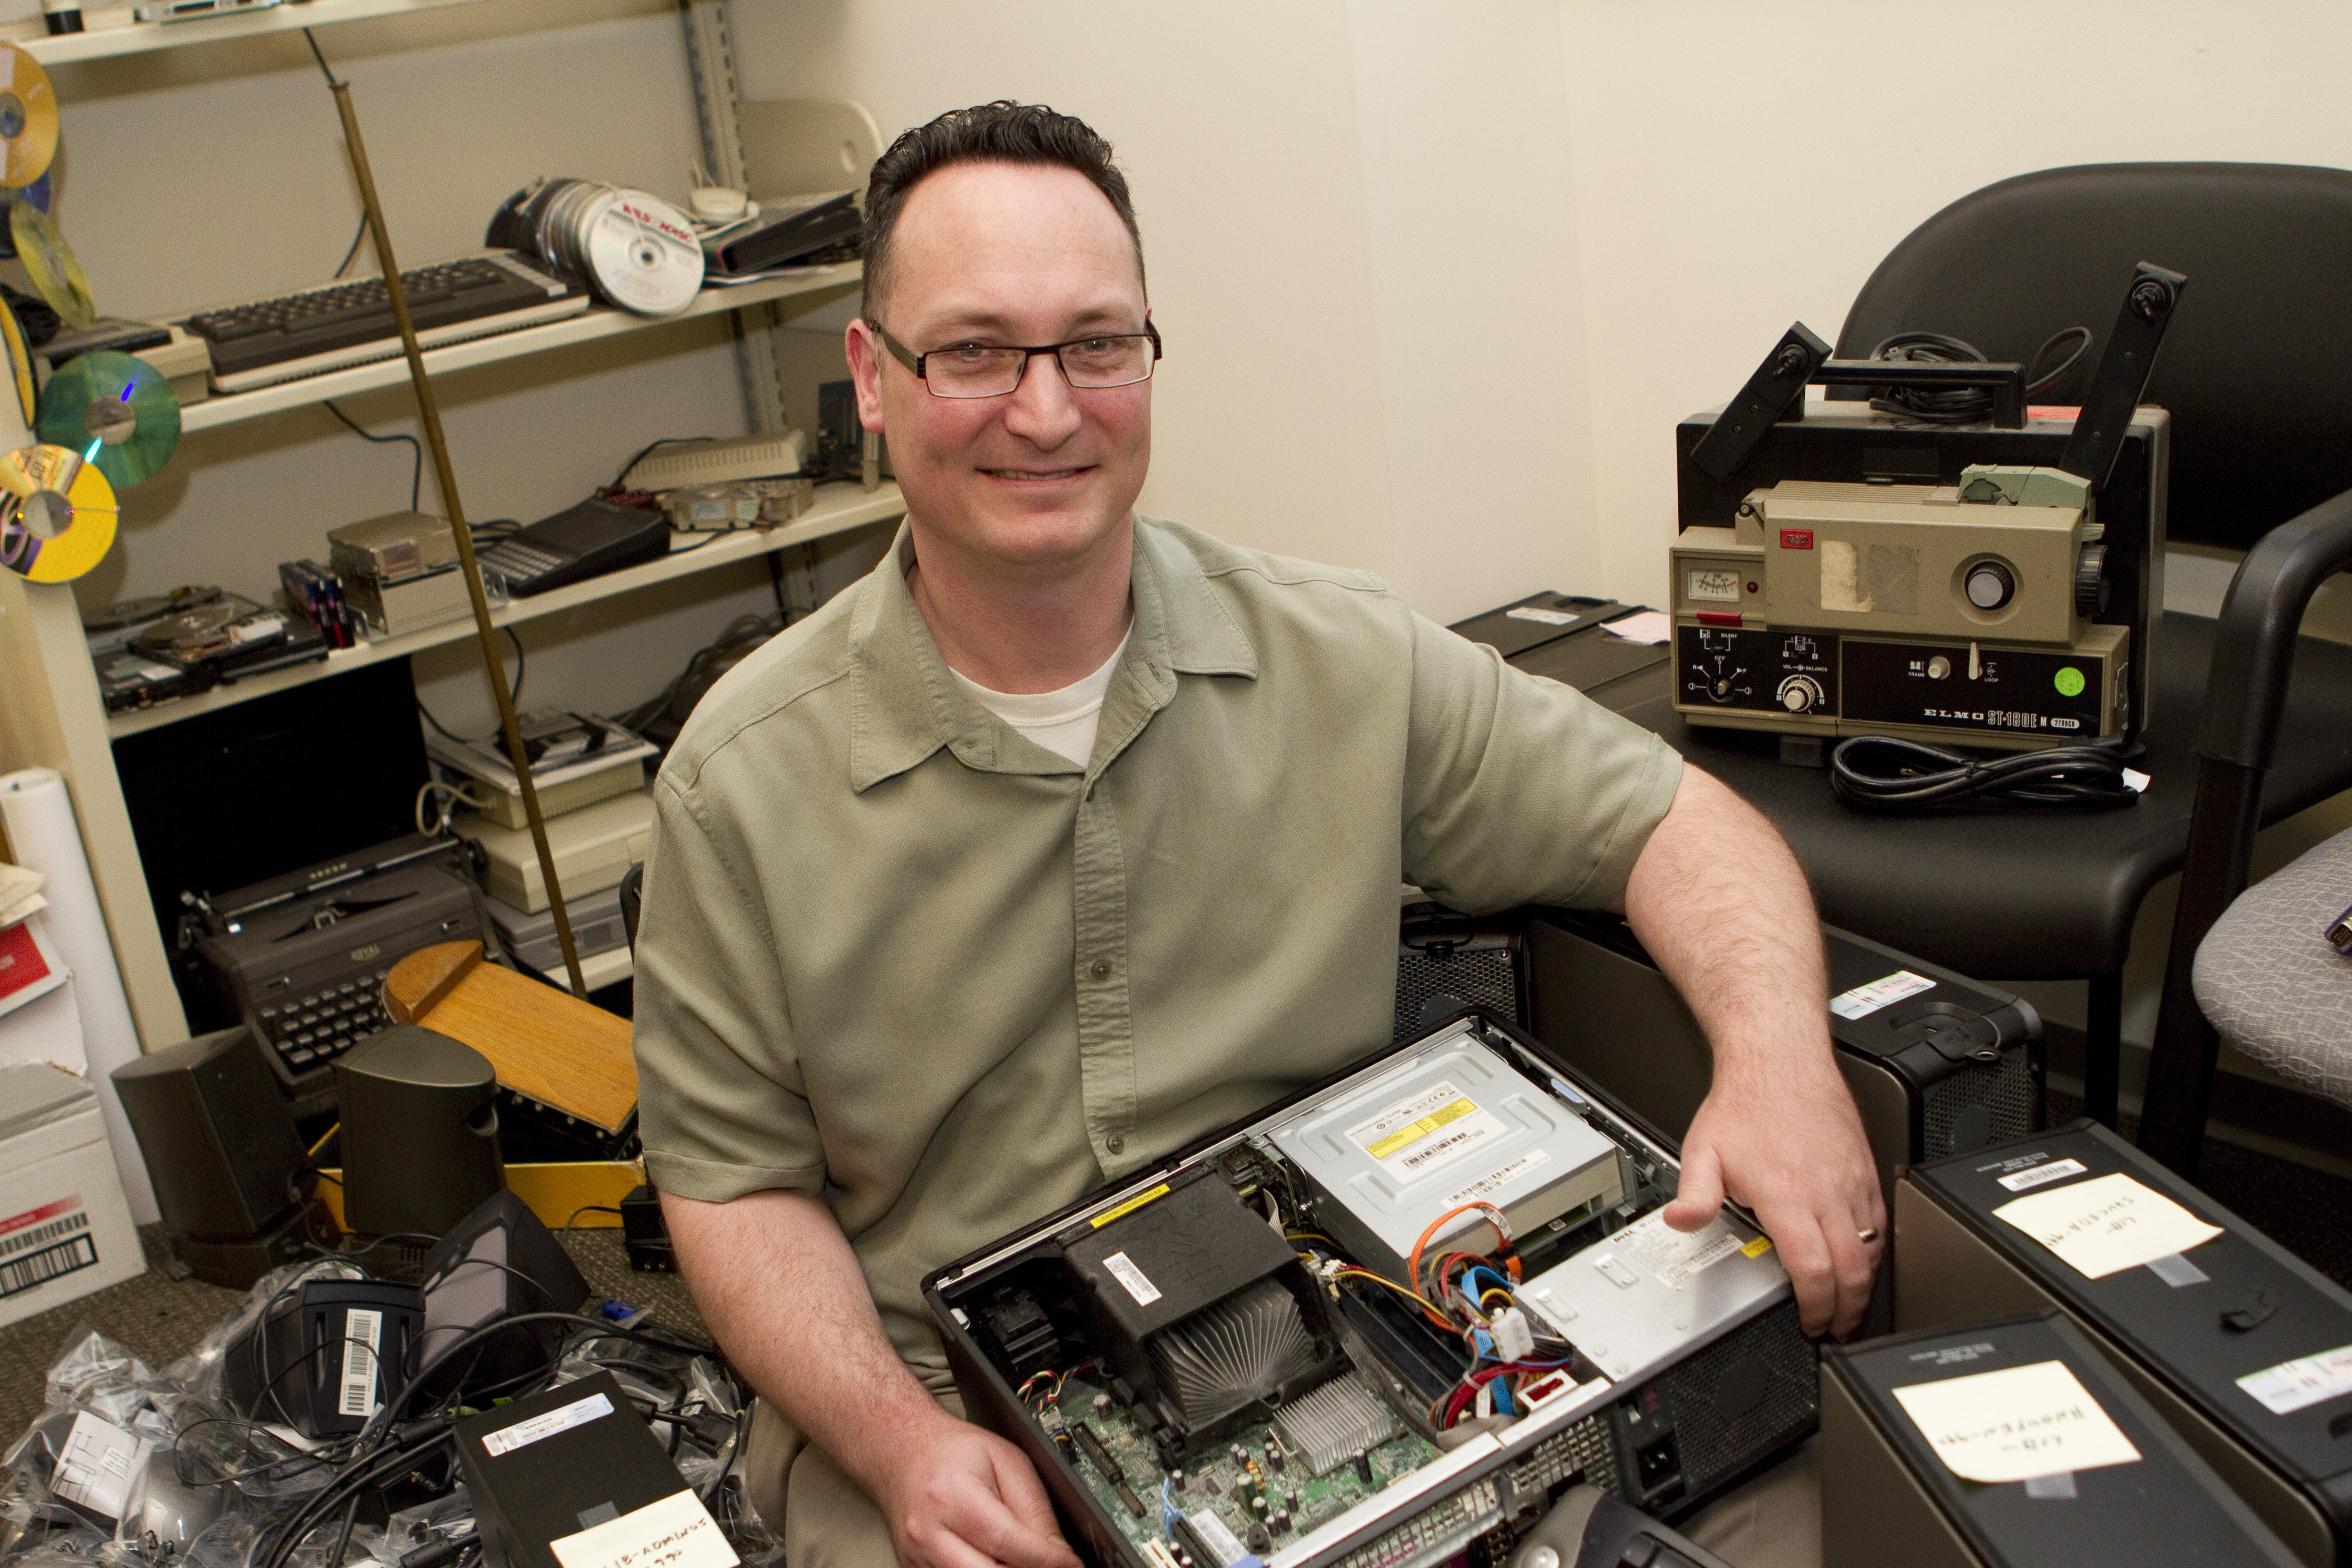 Photo of Brett Fisher with partially deconstructed computer, surrounded by assorted computing equipment